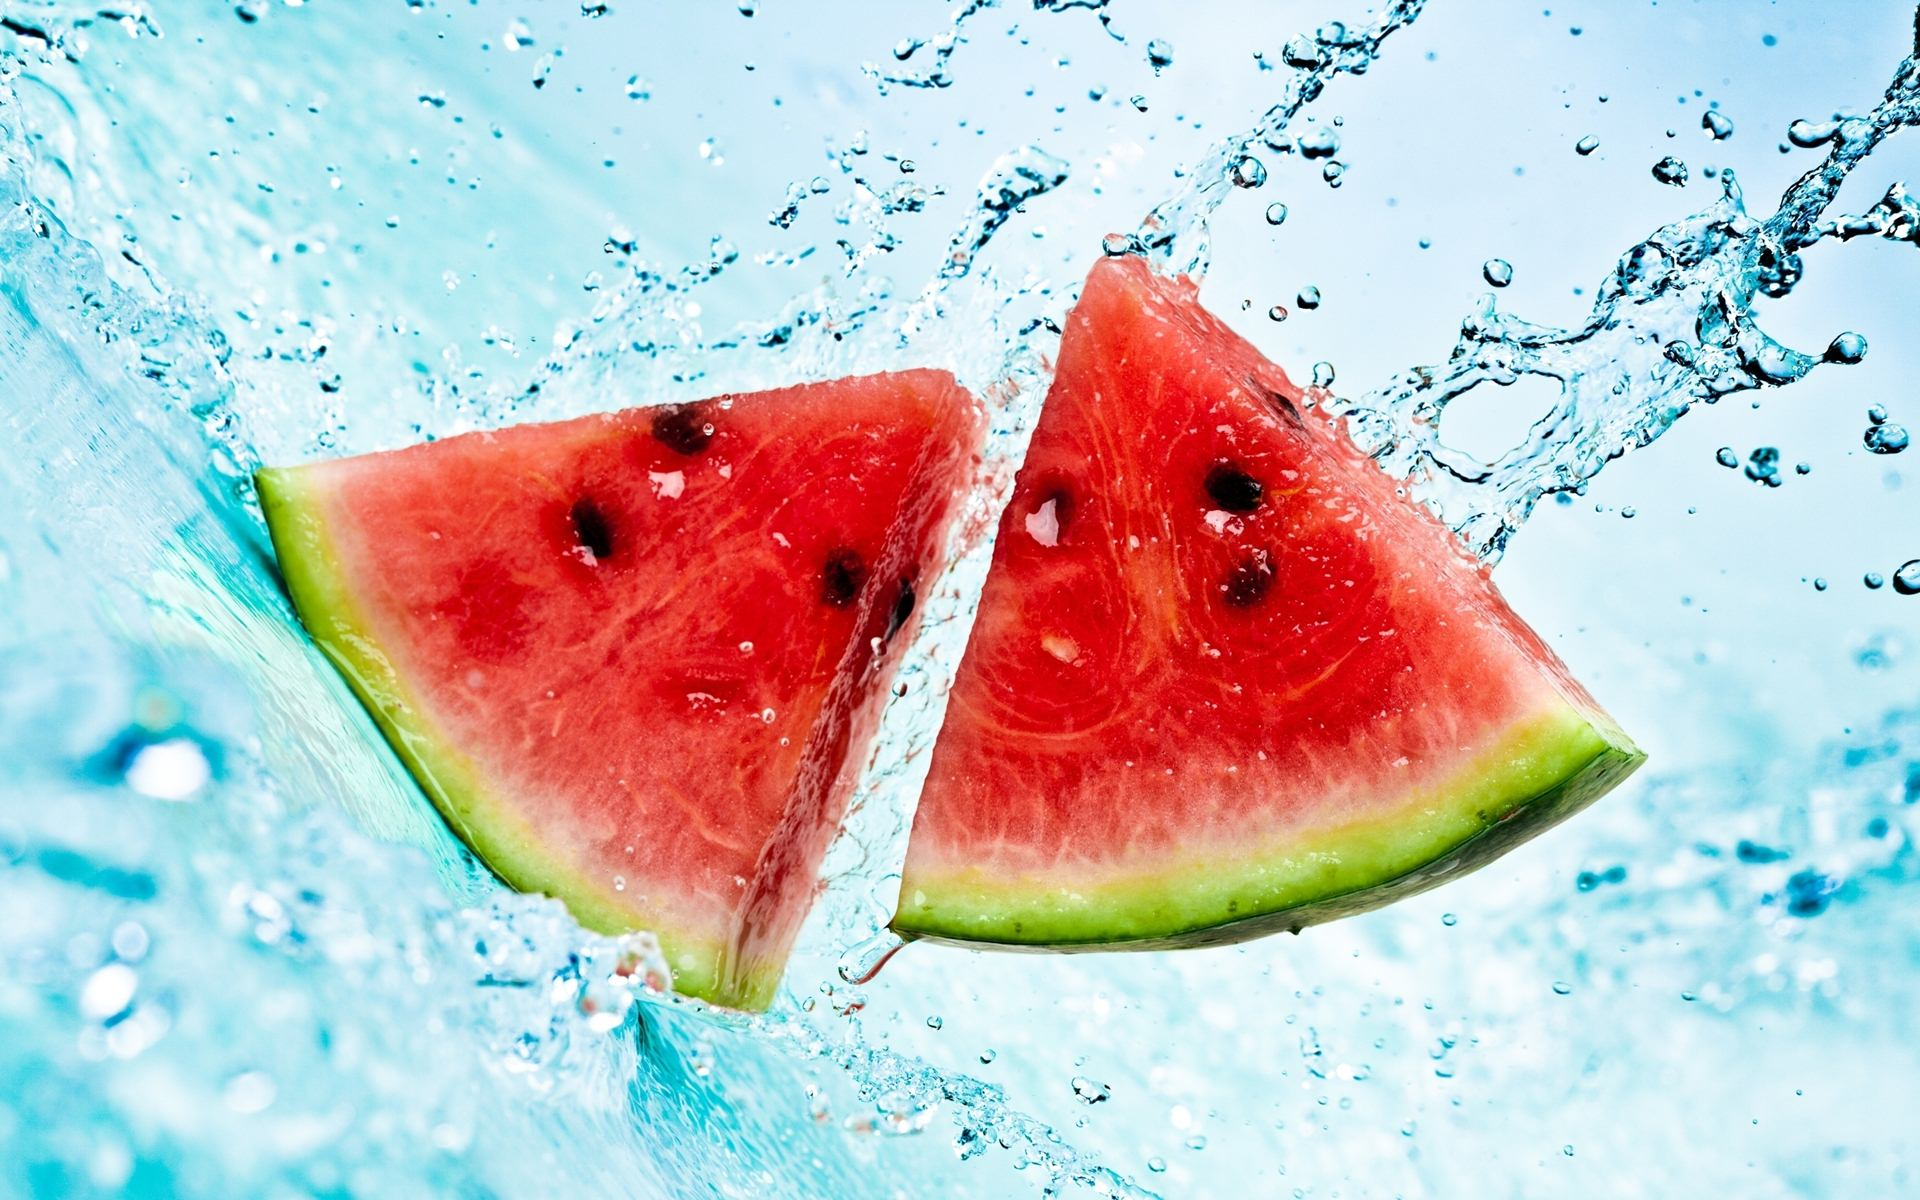 Watermelon Wallpaper · Watermelon Wallpaper ...